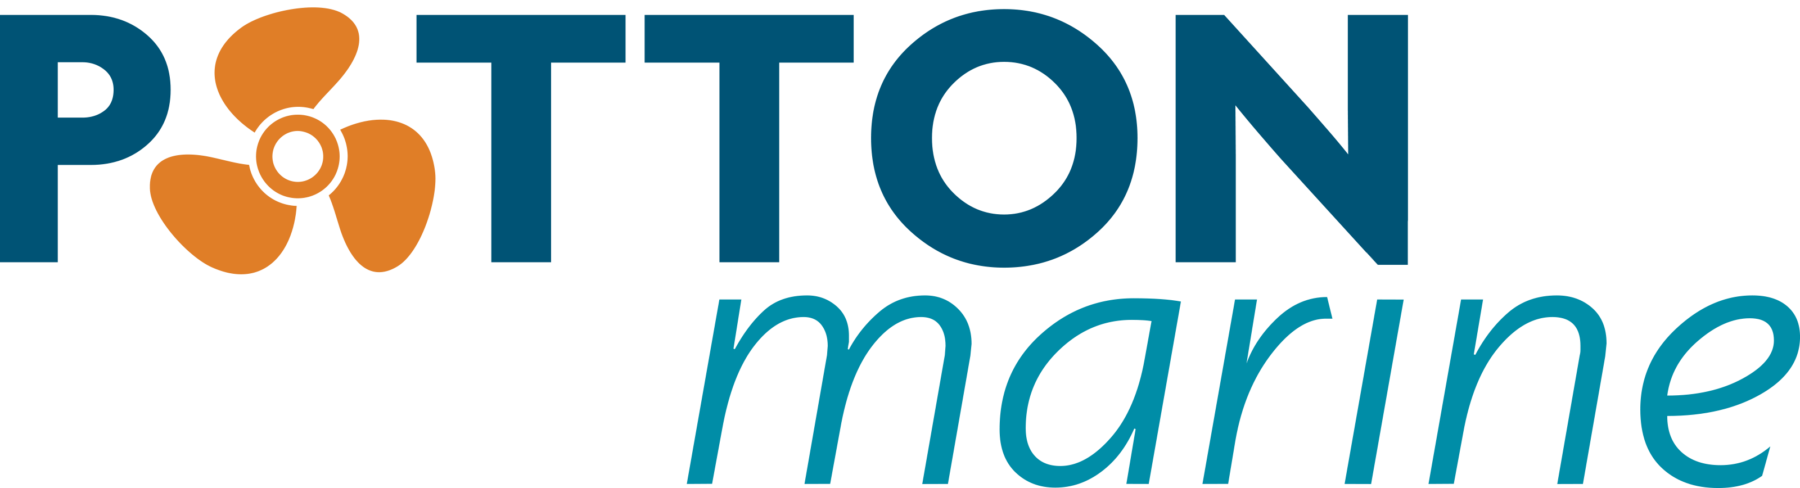 Patton marine Logo